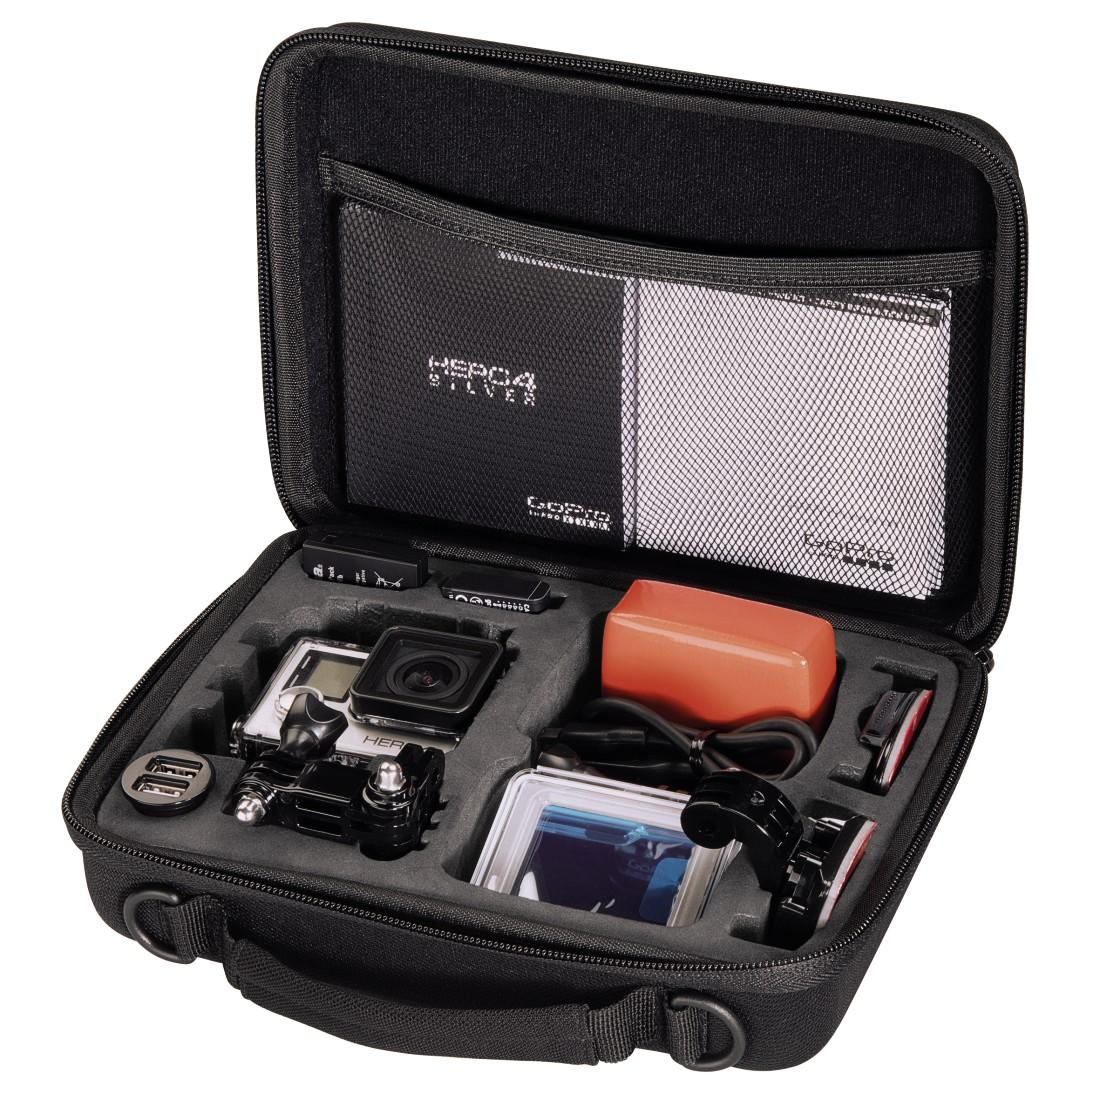 Фото калъф HAMA Hardcase 126670, За GoPro Hero 3/4 Action камера, Черен